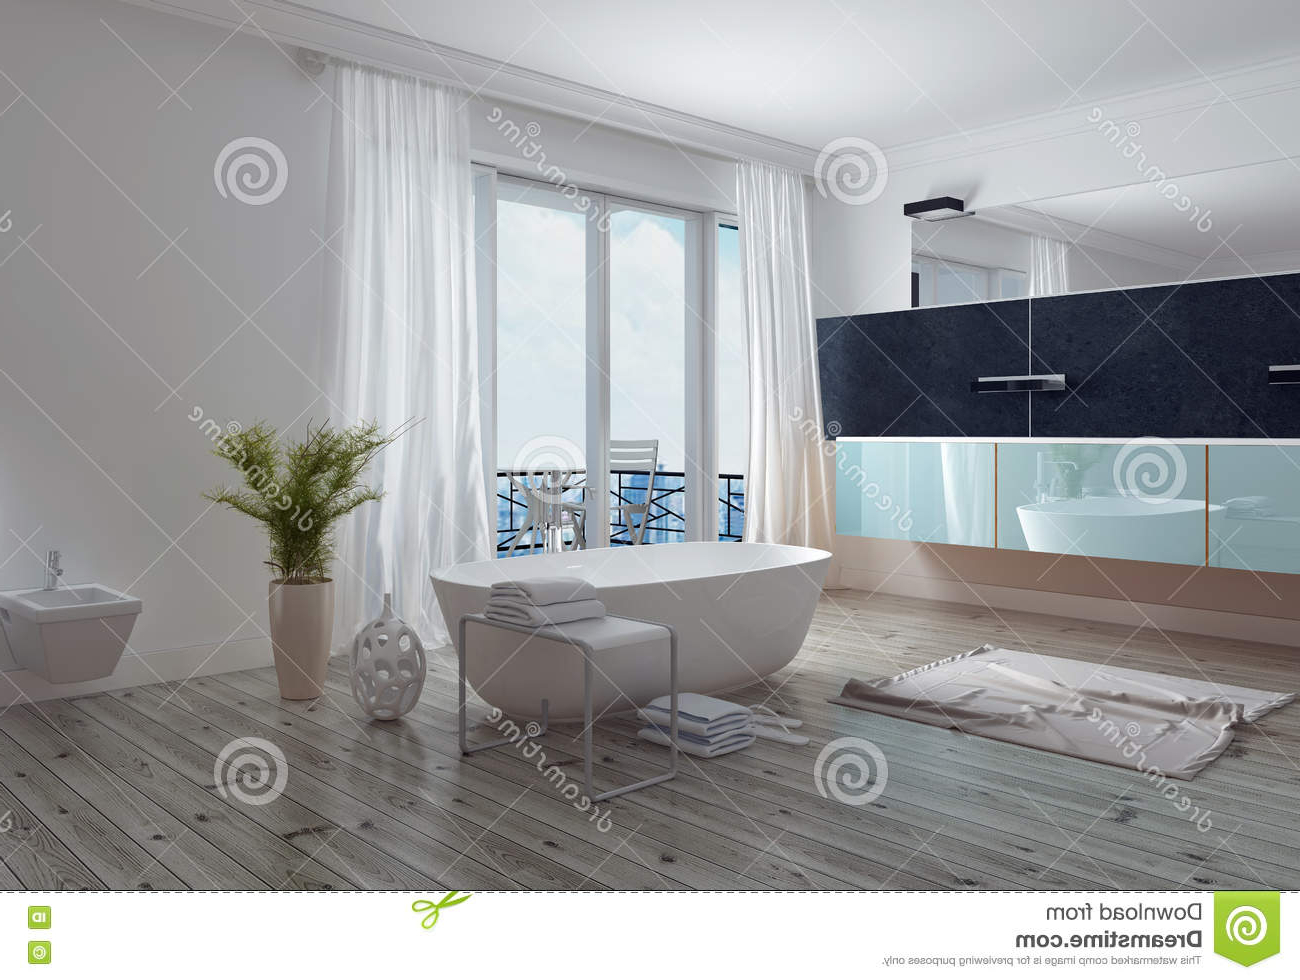 Most Recently Released Modern Stylish White Bathroom With Patio Stock Image – Image Regarding Floor To Ceiling Wall Mirrors (View 16 of 20)